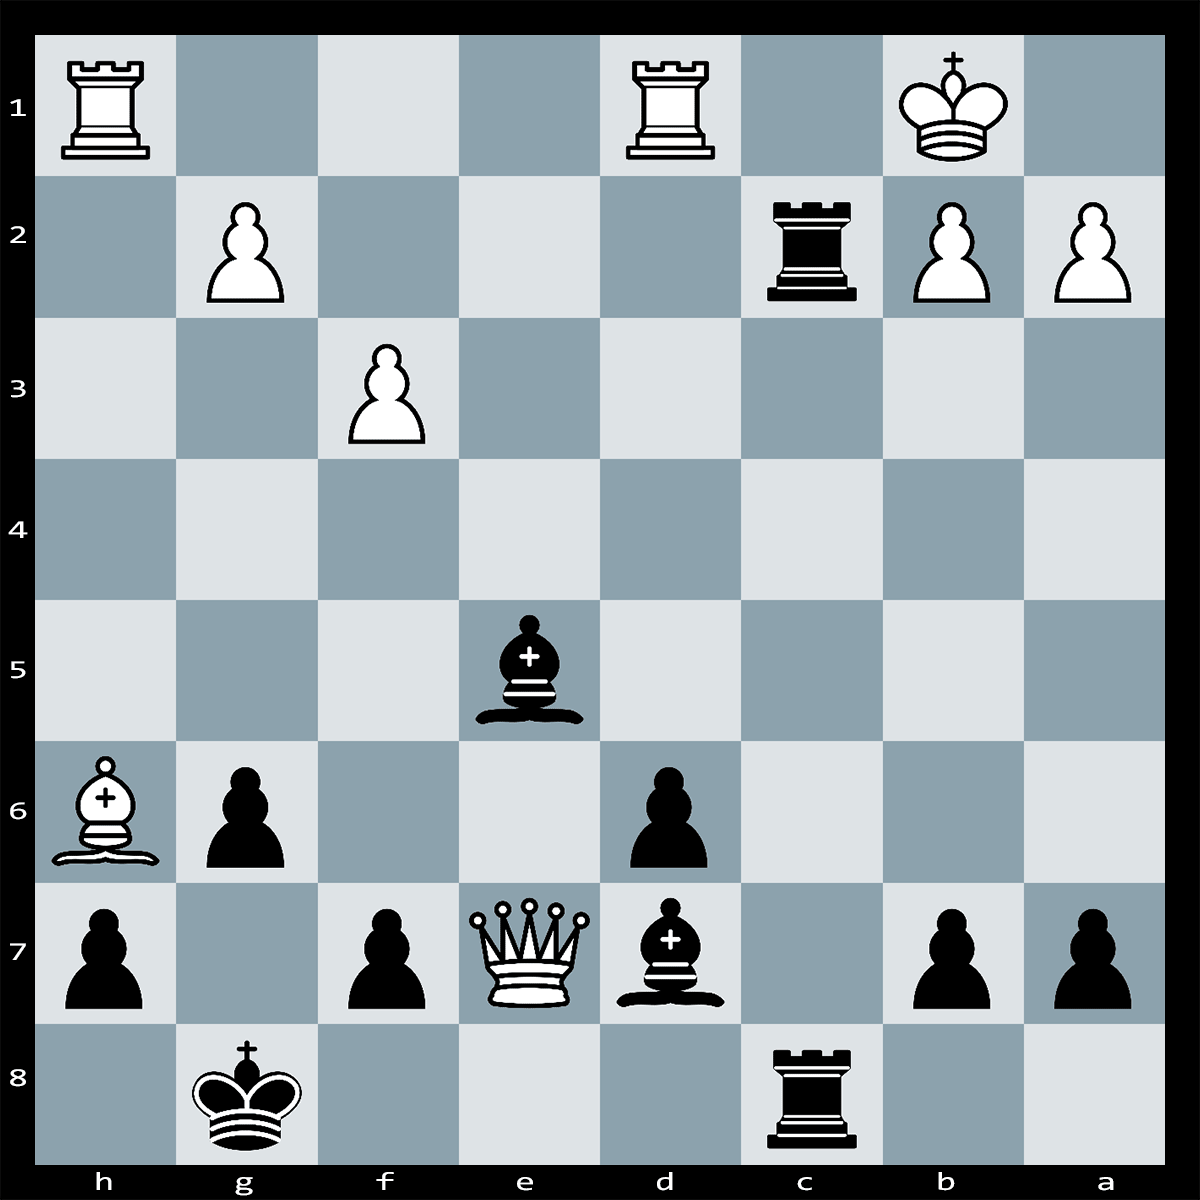 Mate in 4 moves, Black to play | Chess Puzzle #89